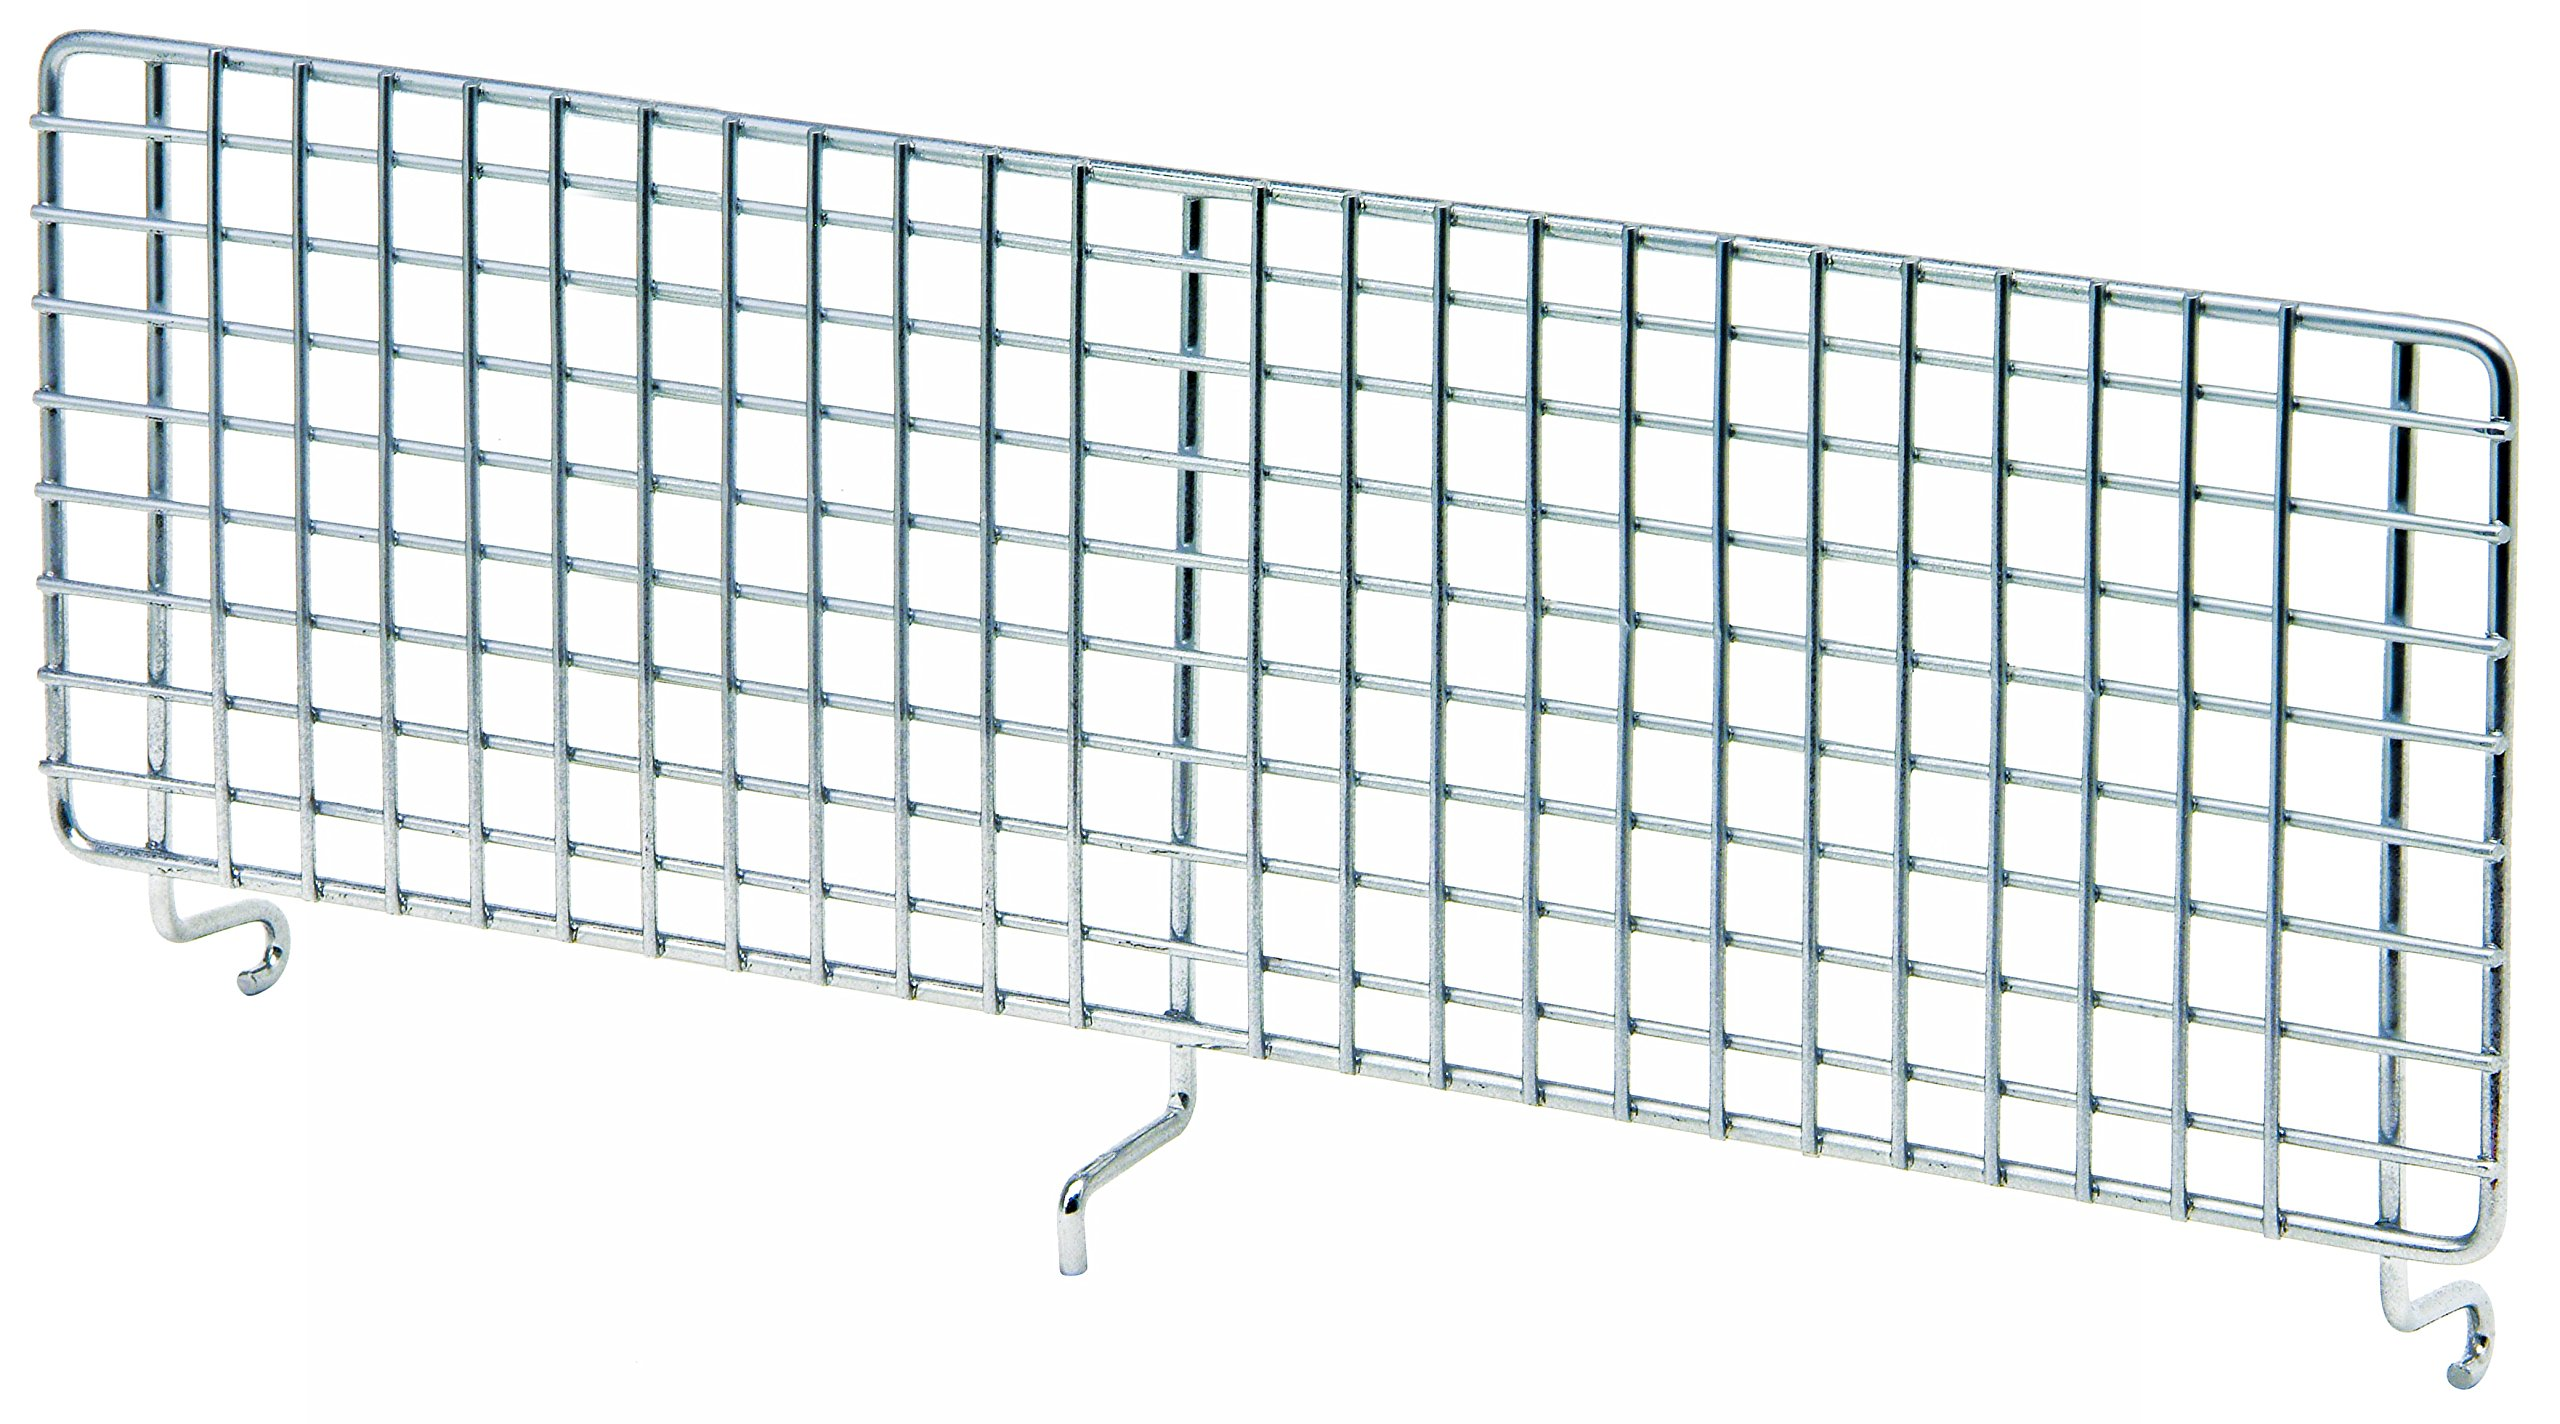 Quantum Storage Systems 4X15HBD Hanging Basket Dividers for Wire Partition Wall System Units, 15'' x 4-1/2''